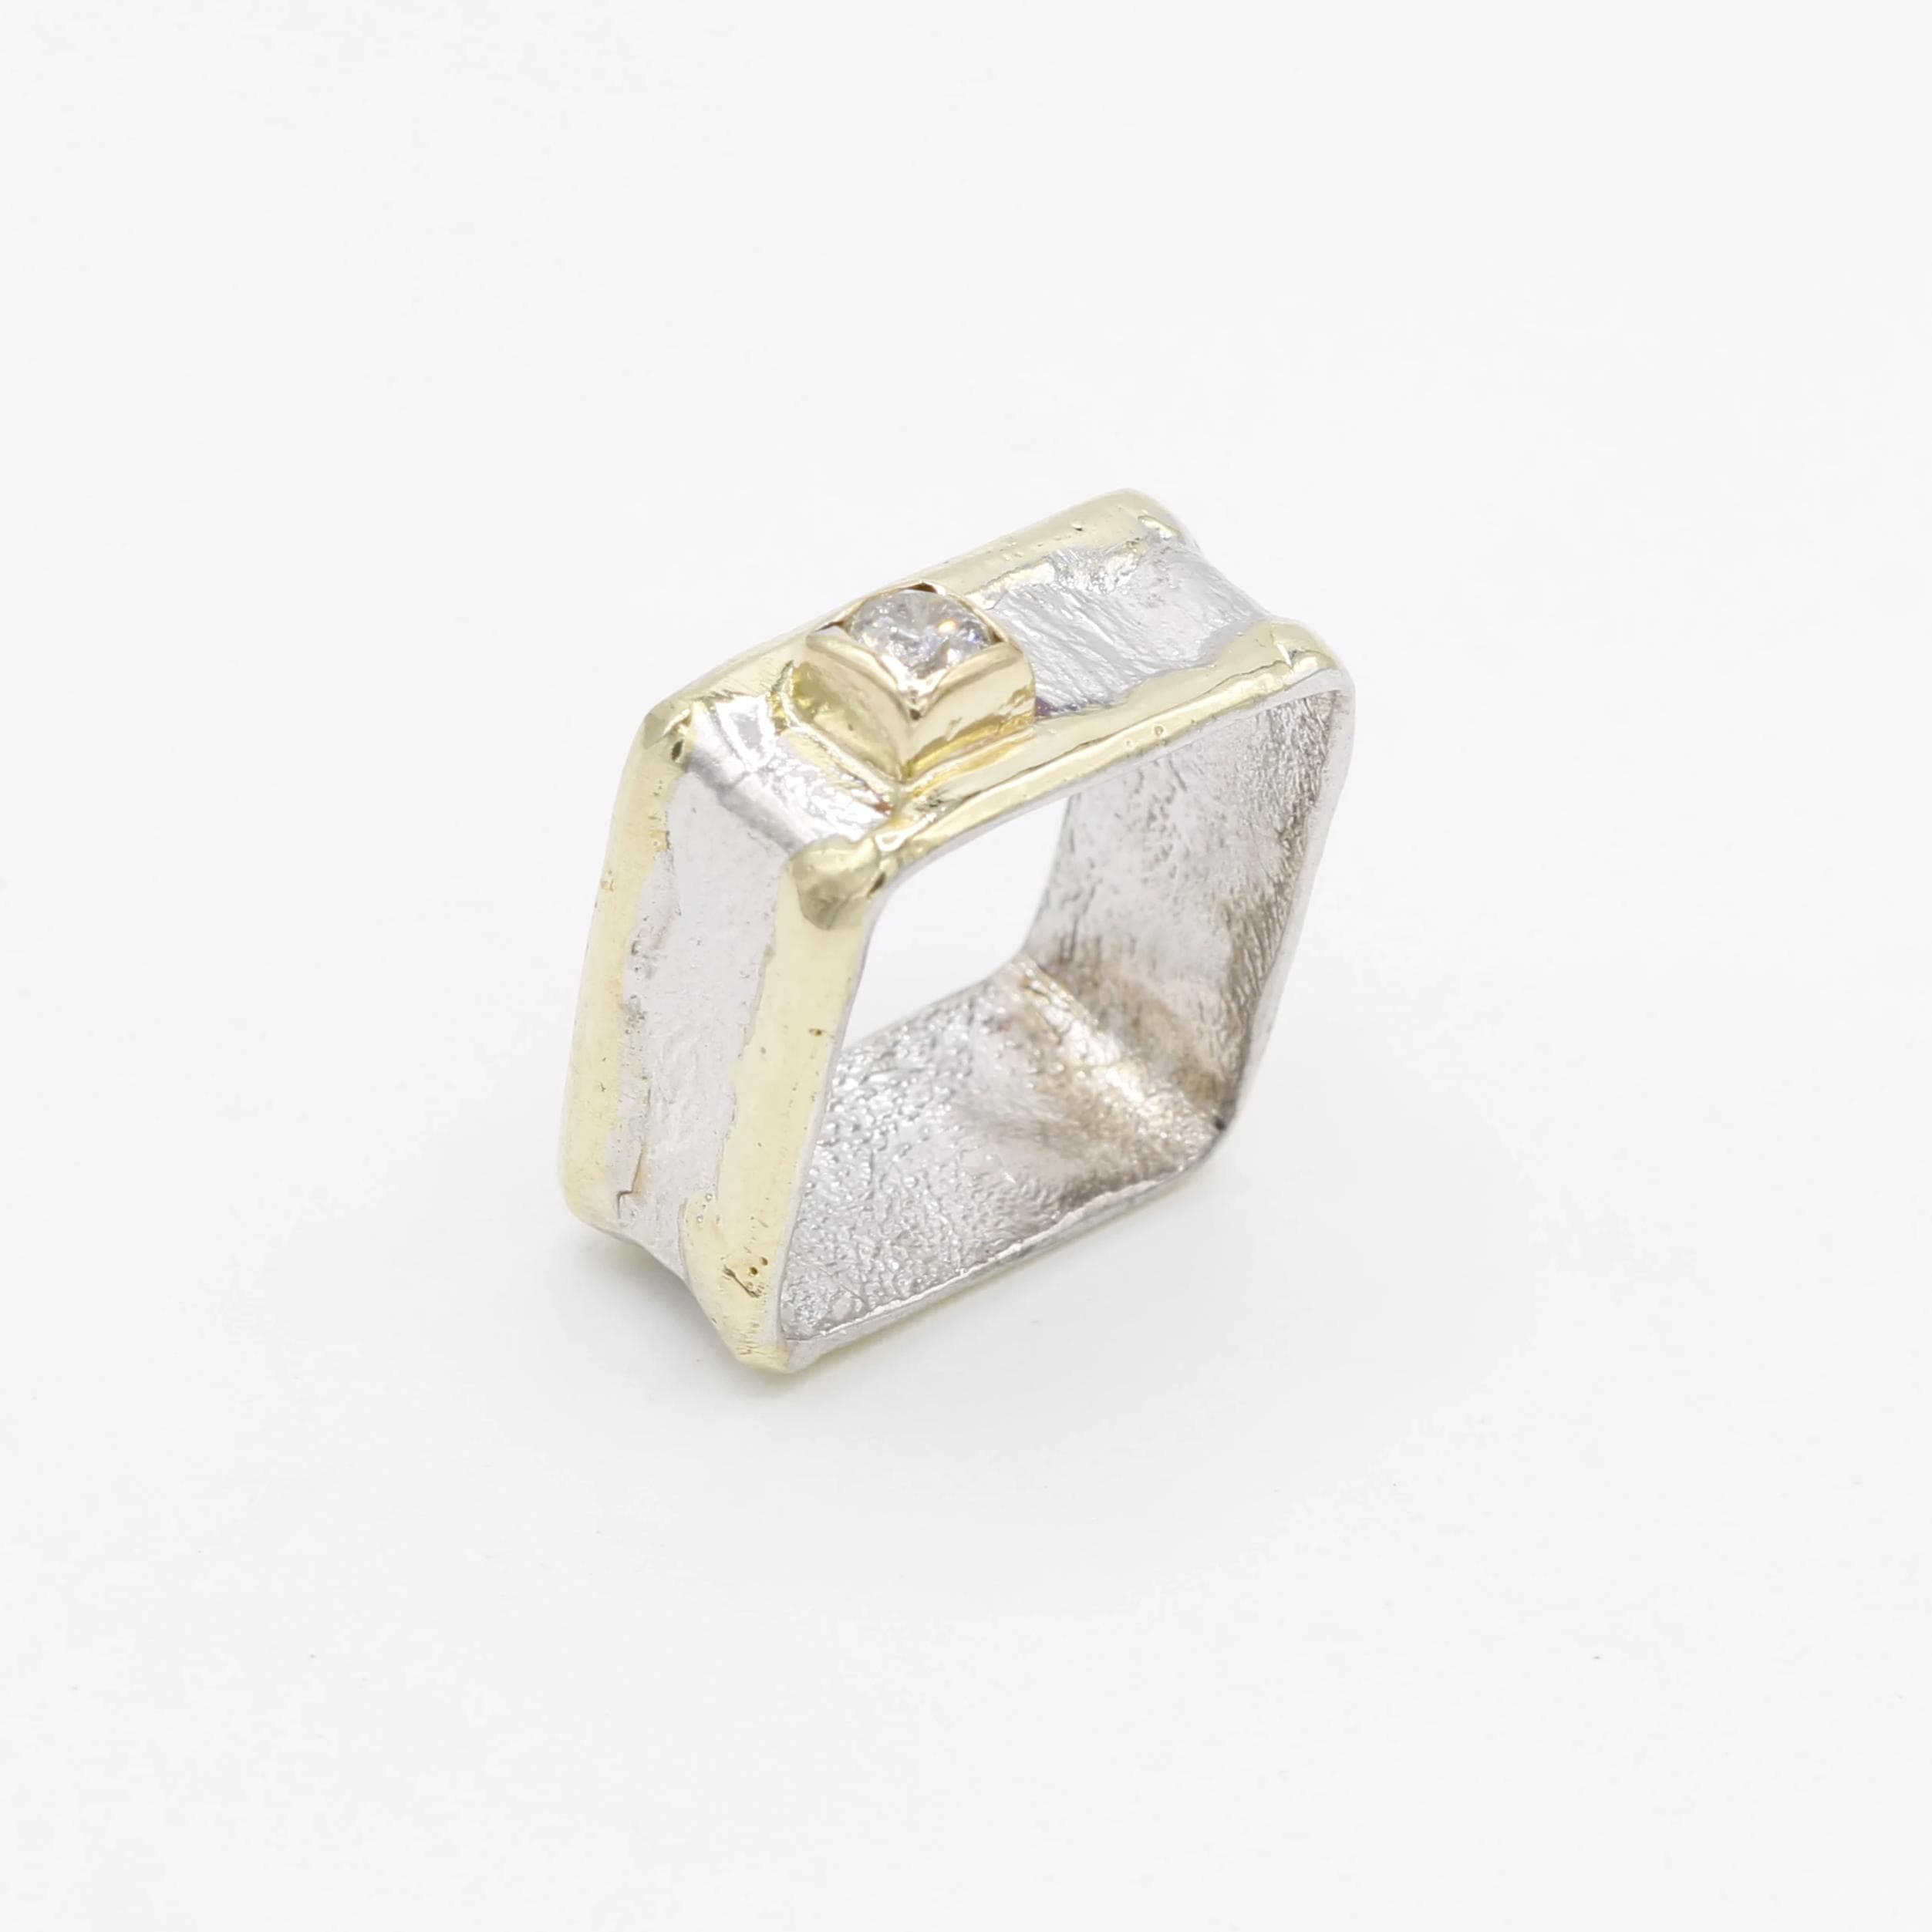 14K Gold & Crystalline Silver Diamond Ring - 30582-Fusion Designs-Renee Taylor Gallery